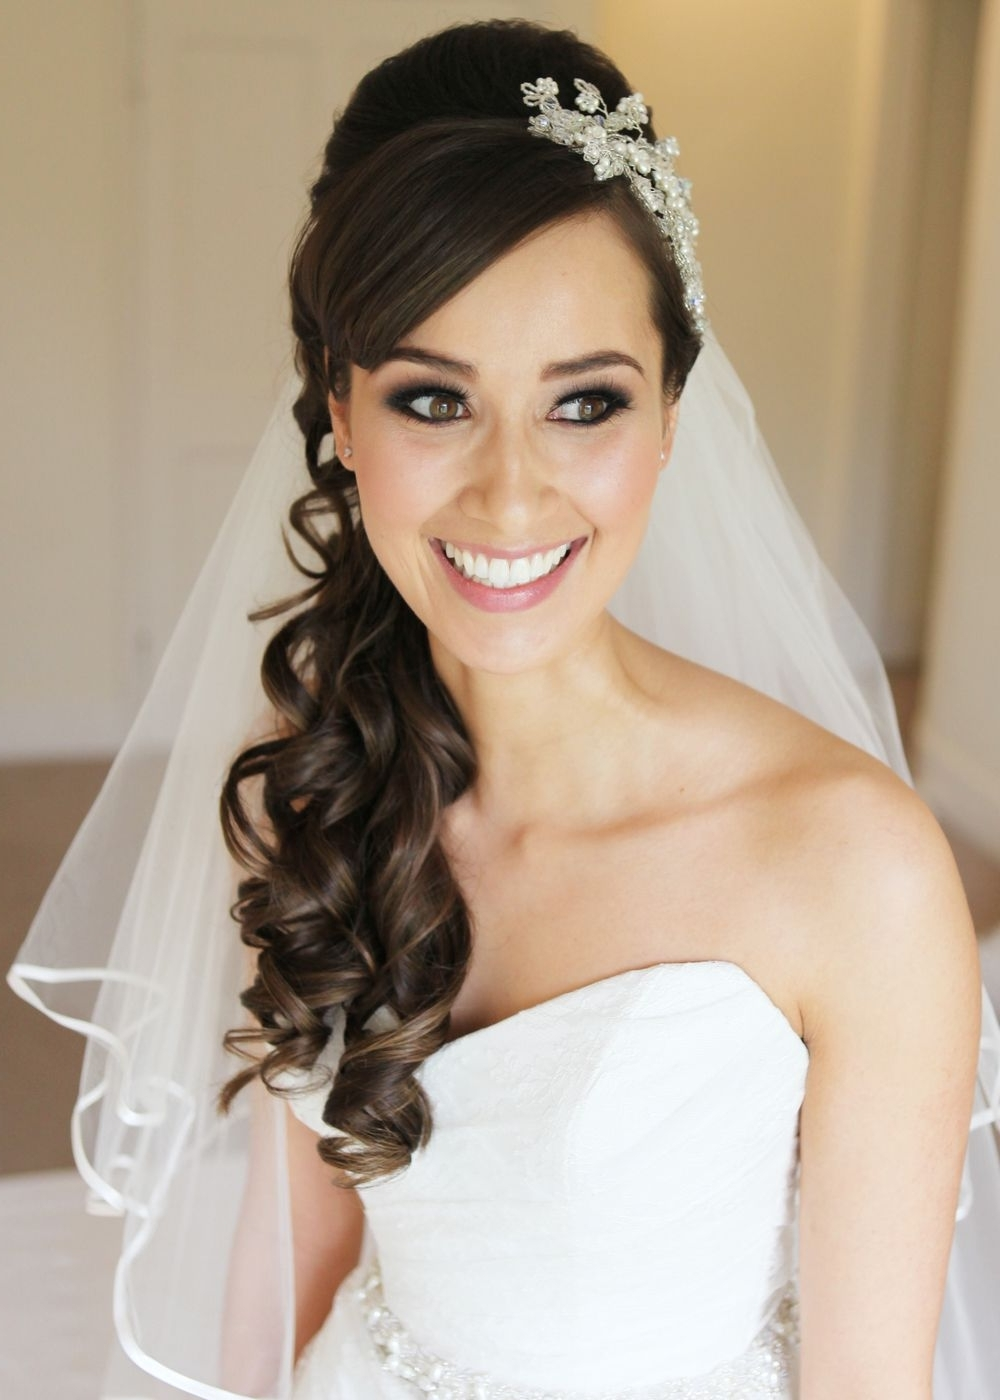 15 Fabulous Half Up Half Down Wedding Hairstyles (View 5 of 15)